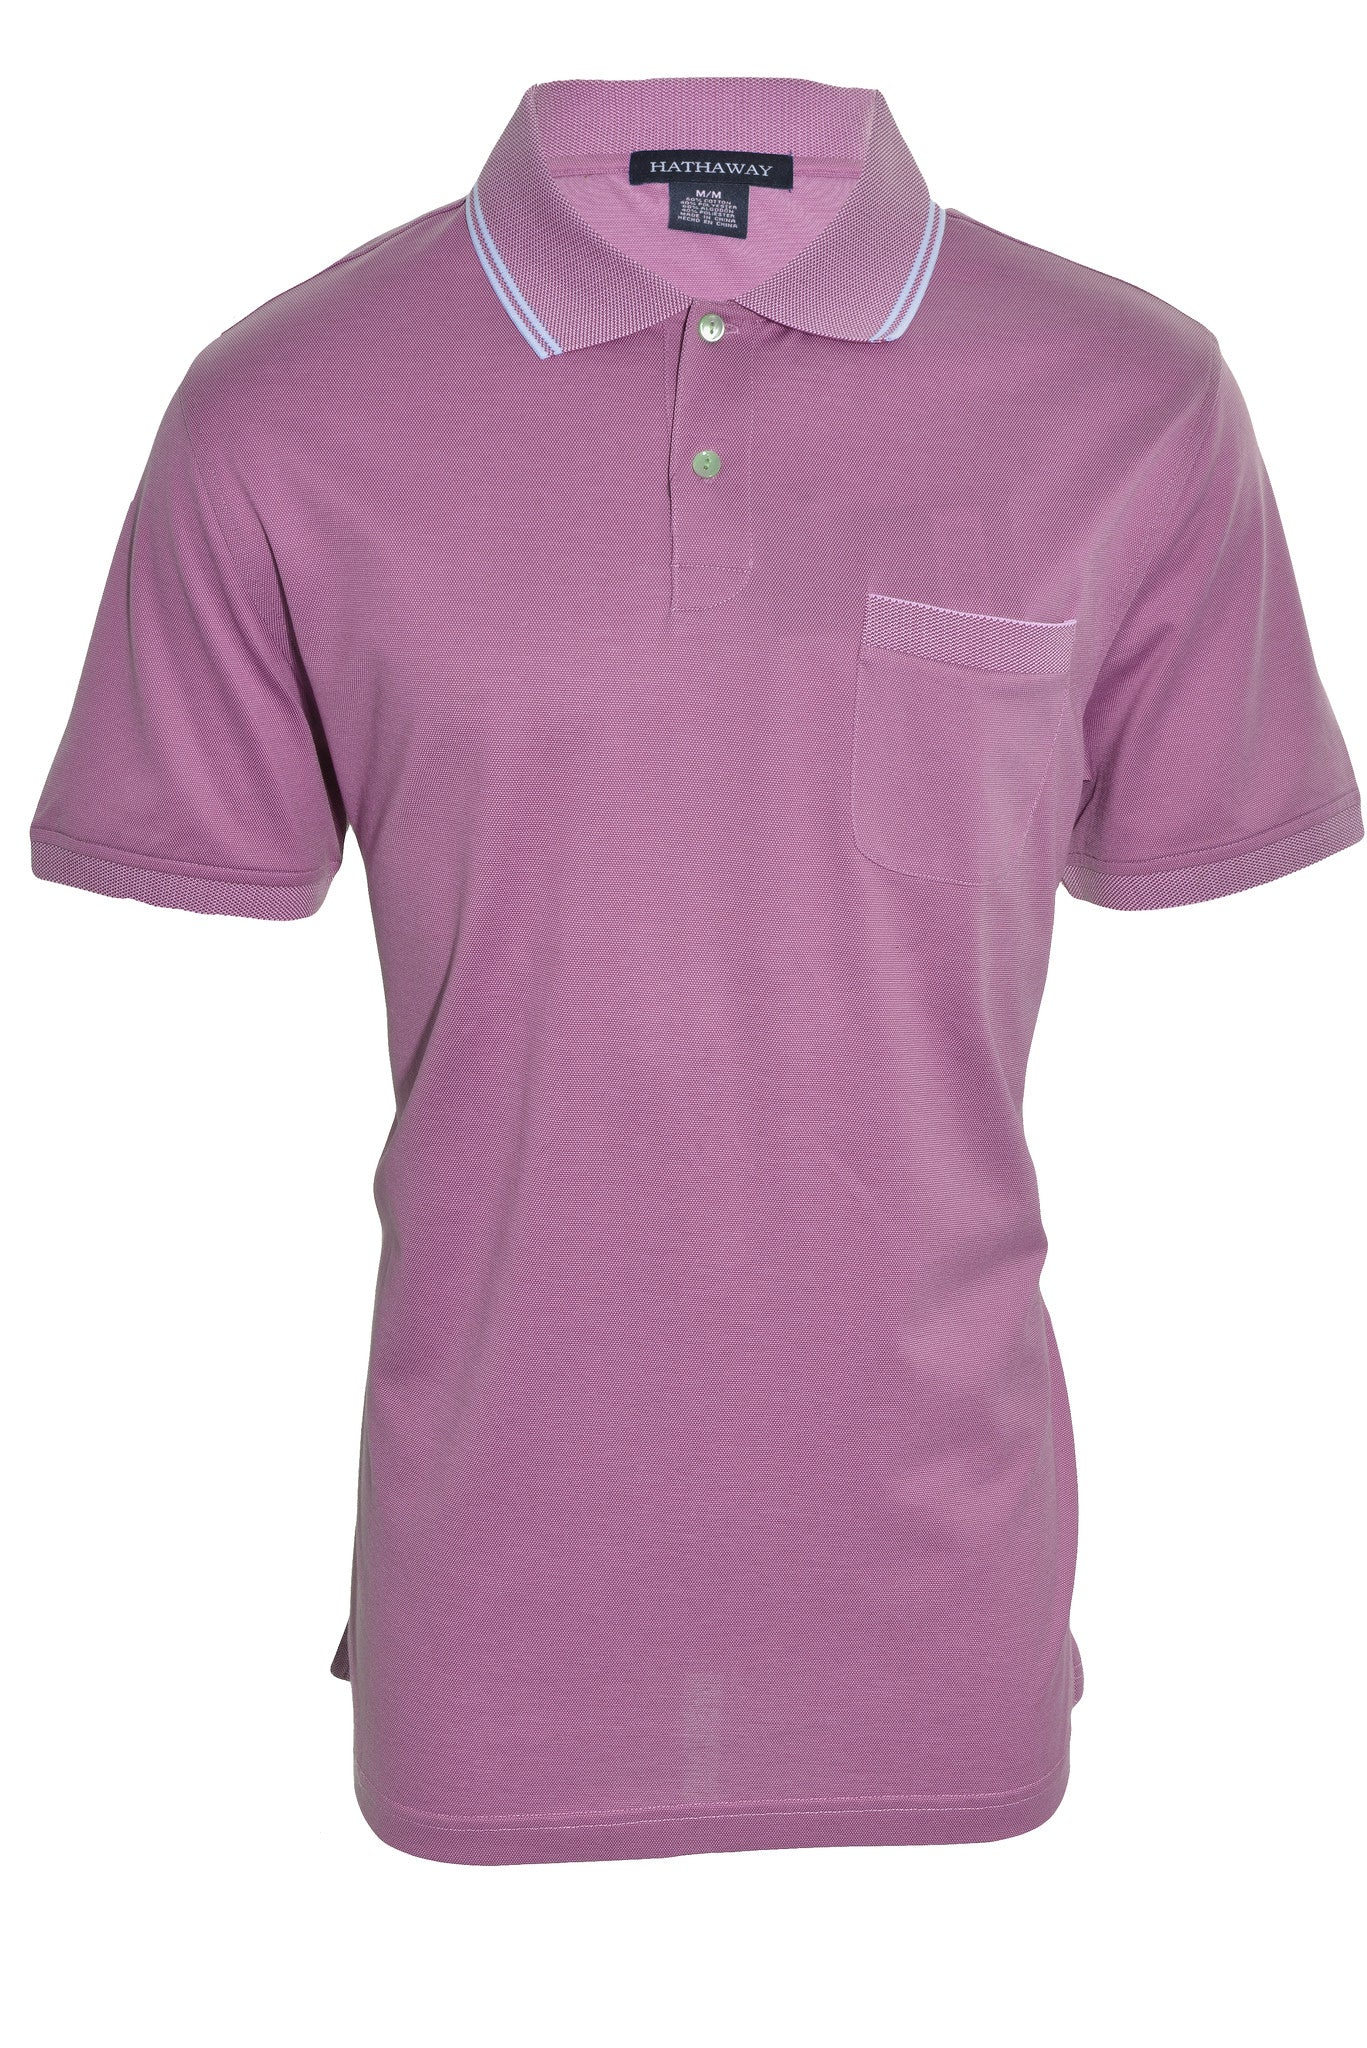 Hathaway Mens Relaxed Fit  Polo Shirt | Pink